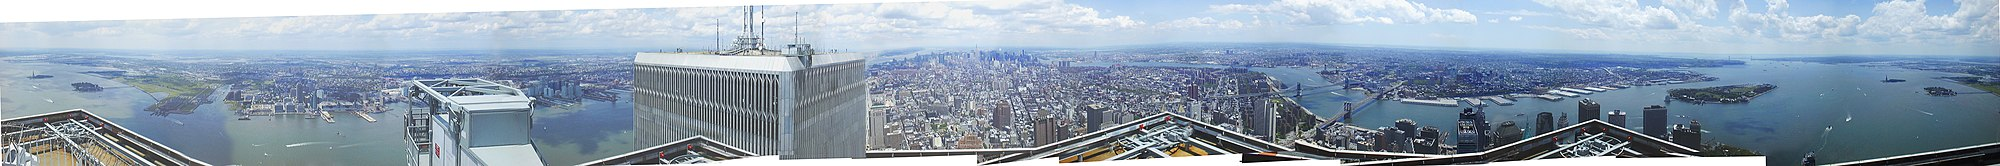 Top of the World; panoramazicht op New York vanaf de South Tower, augustus 2001